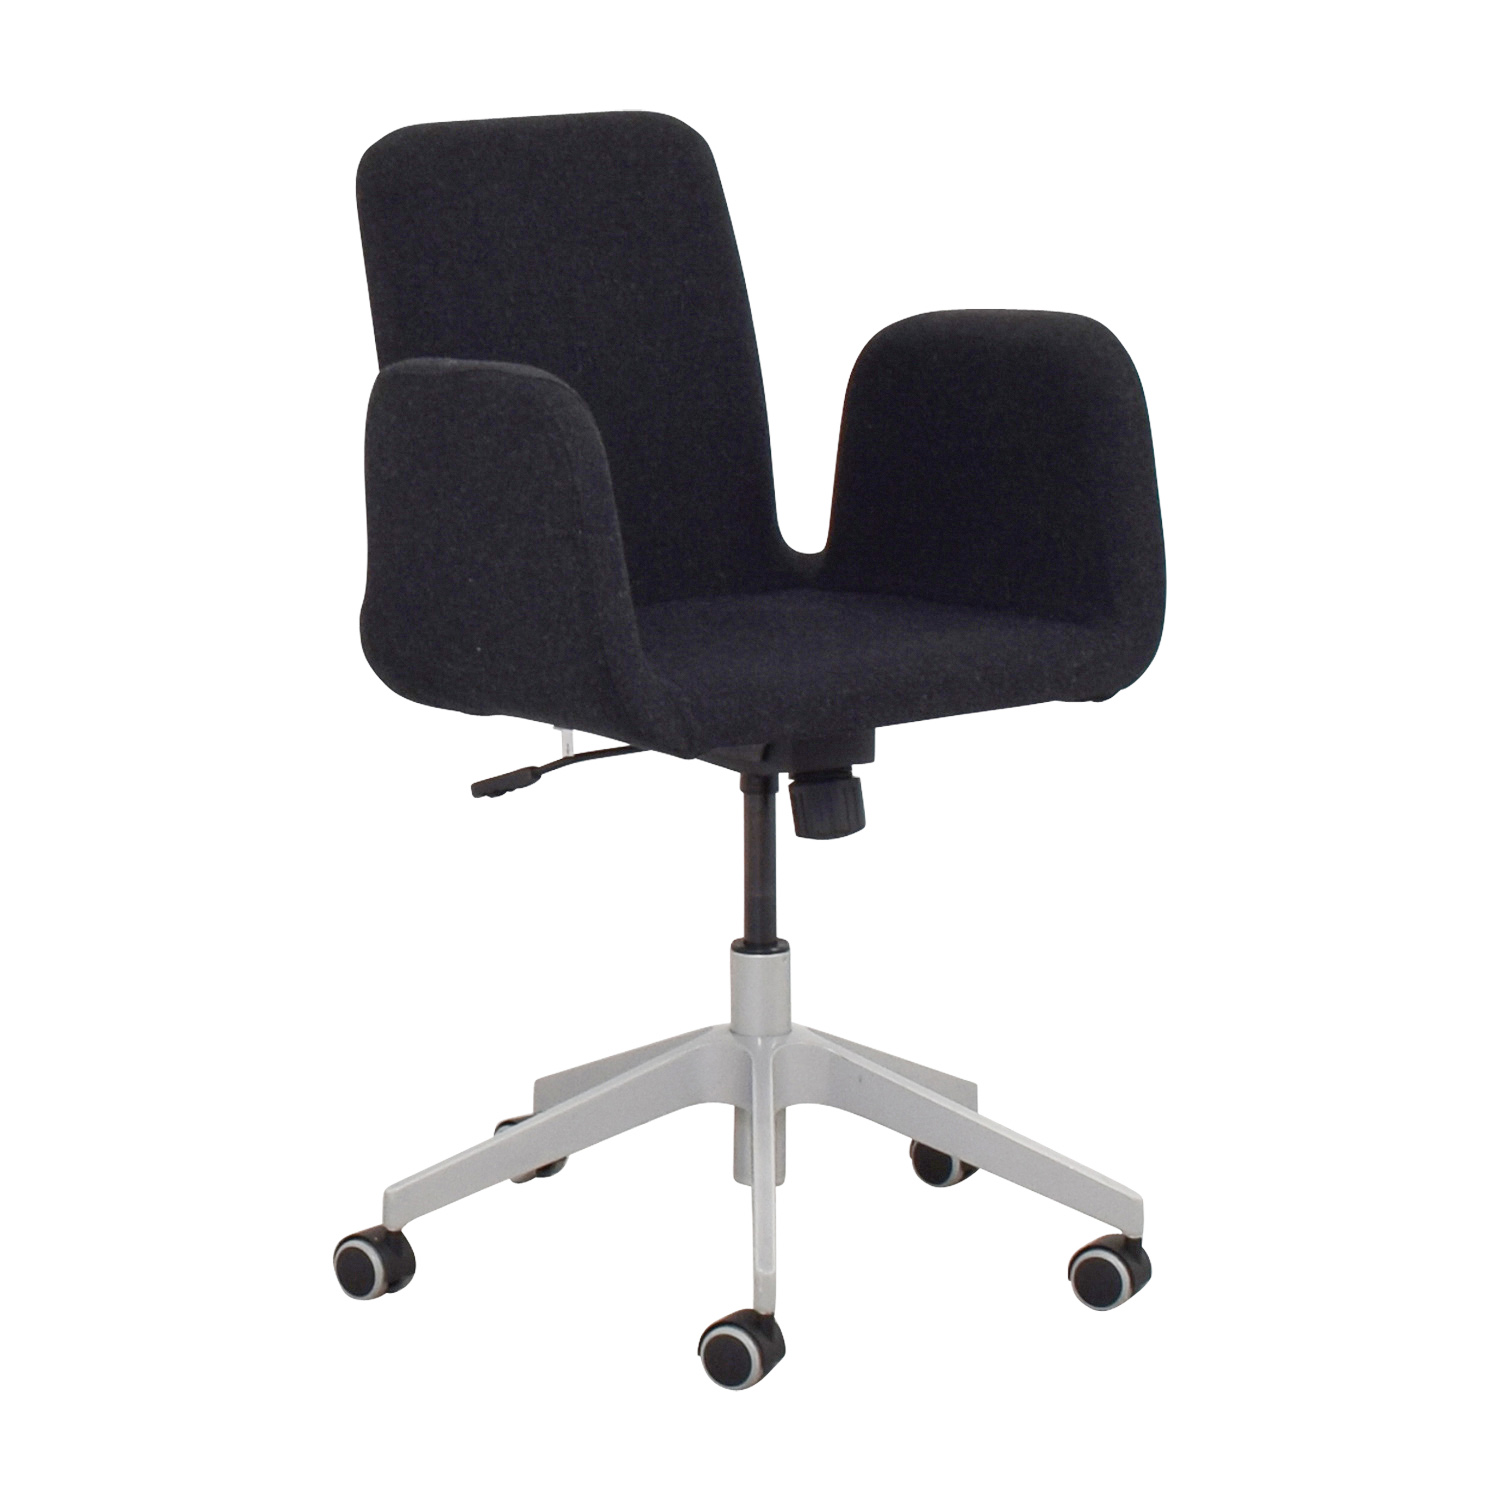 Ikea Desk Chair 61 Off Ikea Ikea Black Desk Chair Chairs